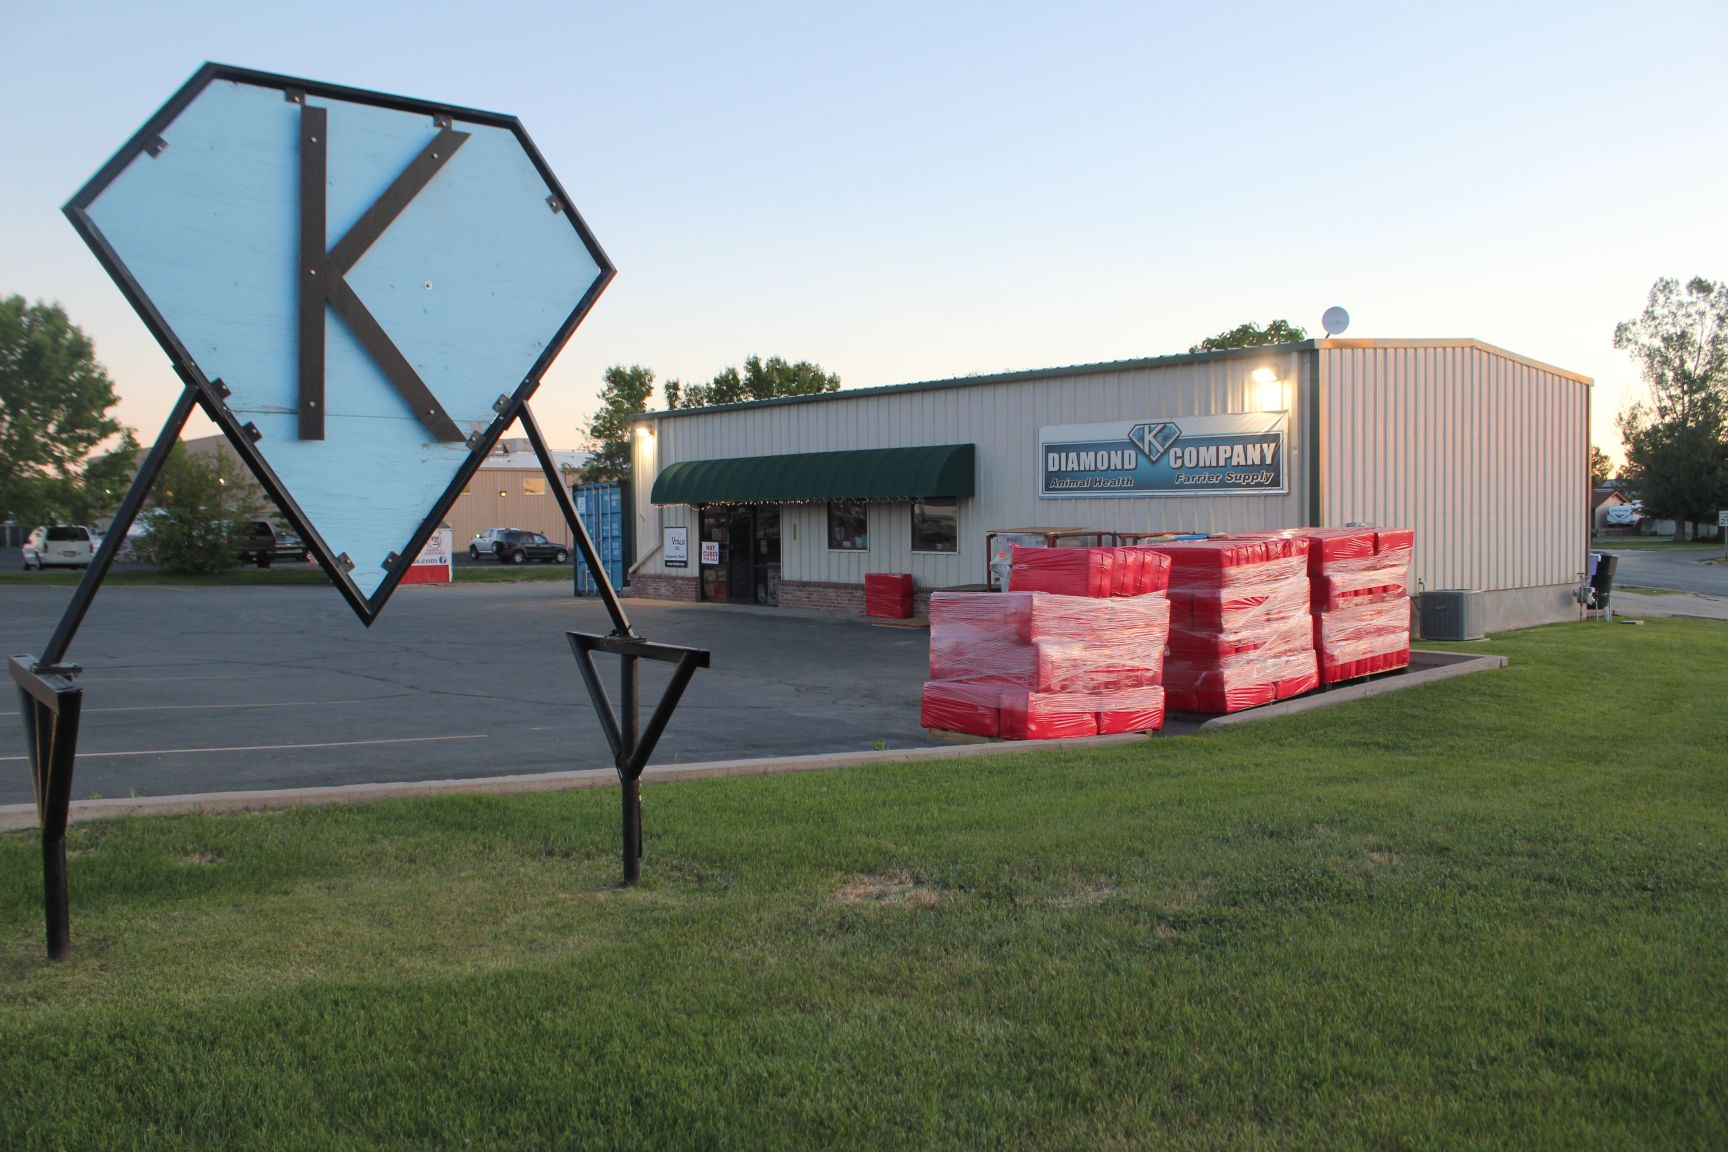 View of Diamond K Company Storefront and Sign in Odgen, UT